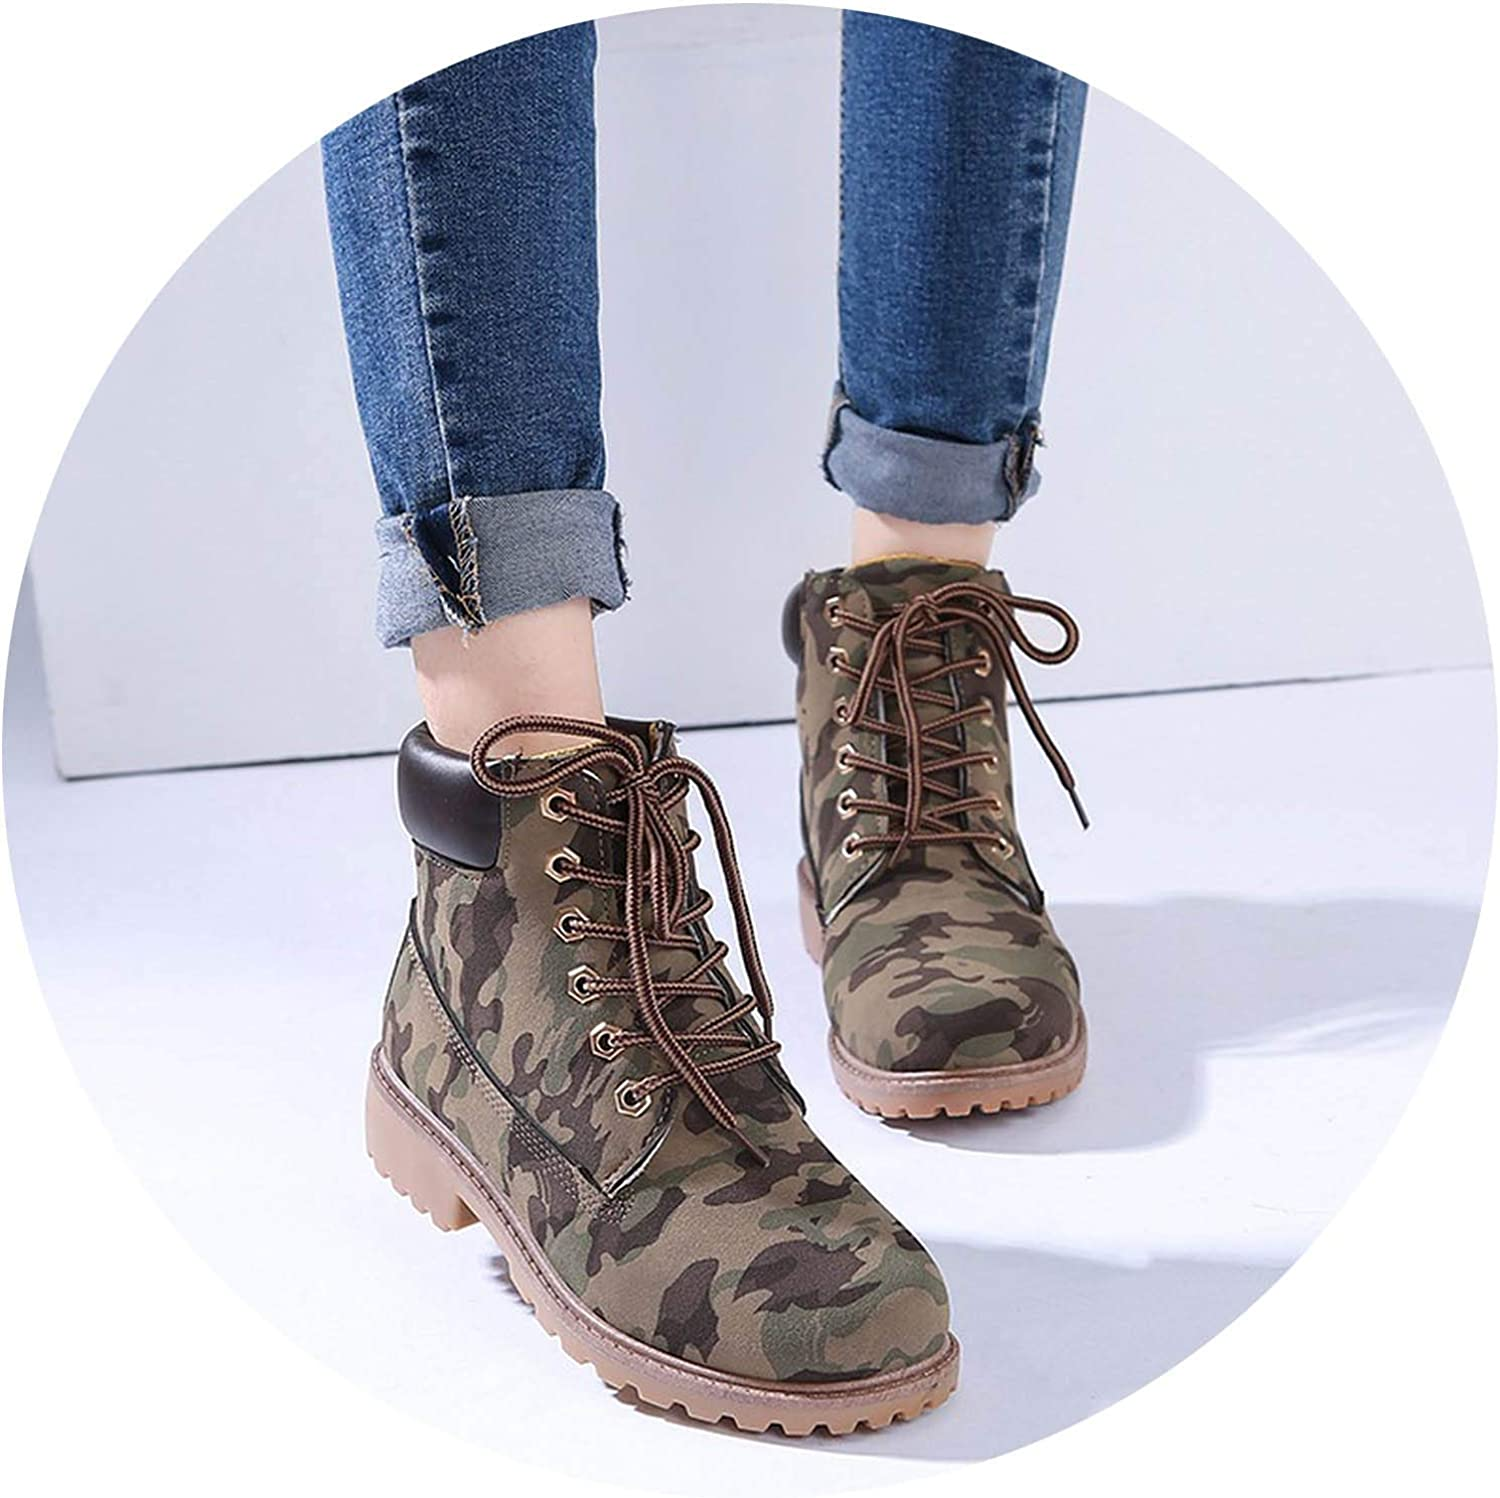 Flower cat 2018 Winter Boots Women Casual shoes Tooling Ankle Snow Boots Plush Warm Women Boots